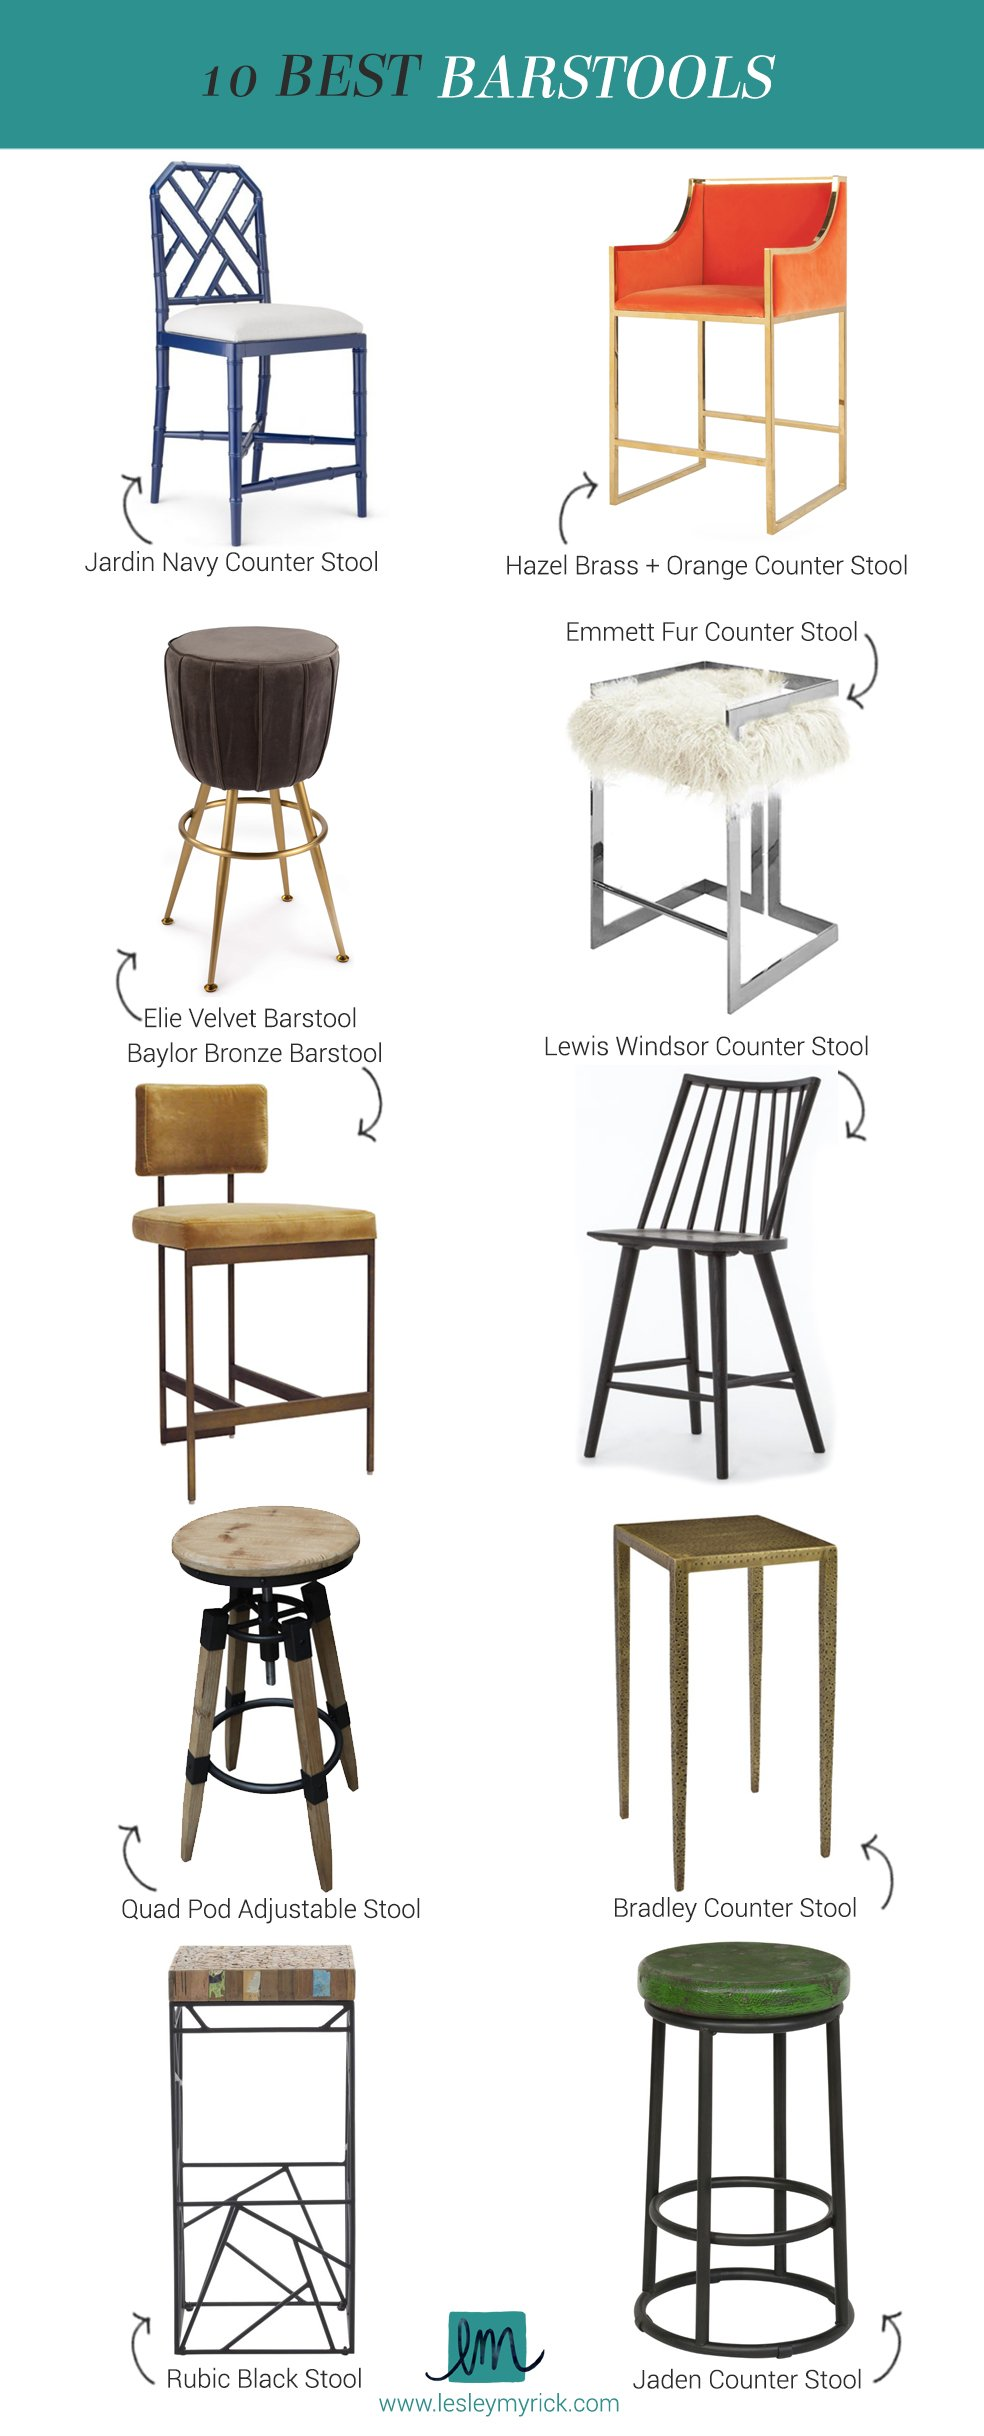 10 awesome barstool and counter stool picks from interior designer Lesley Myrick (orange velvet! fur! brass!)